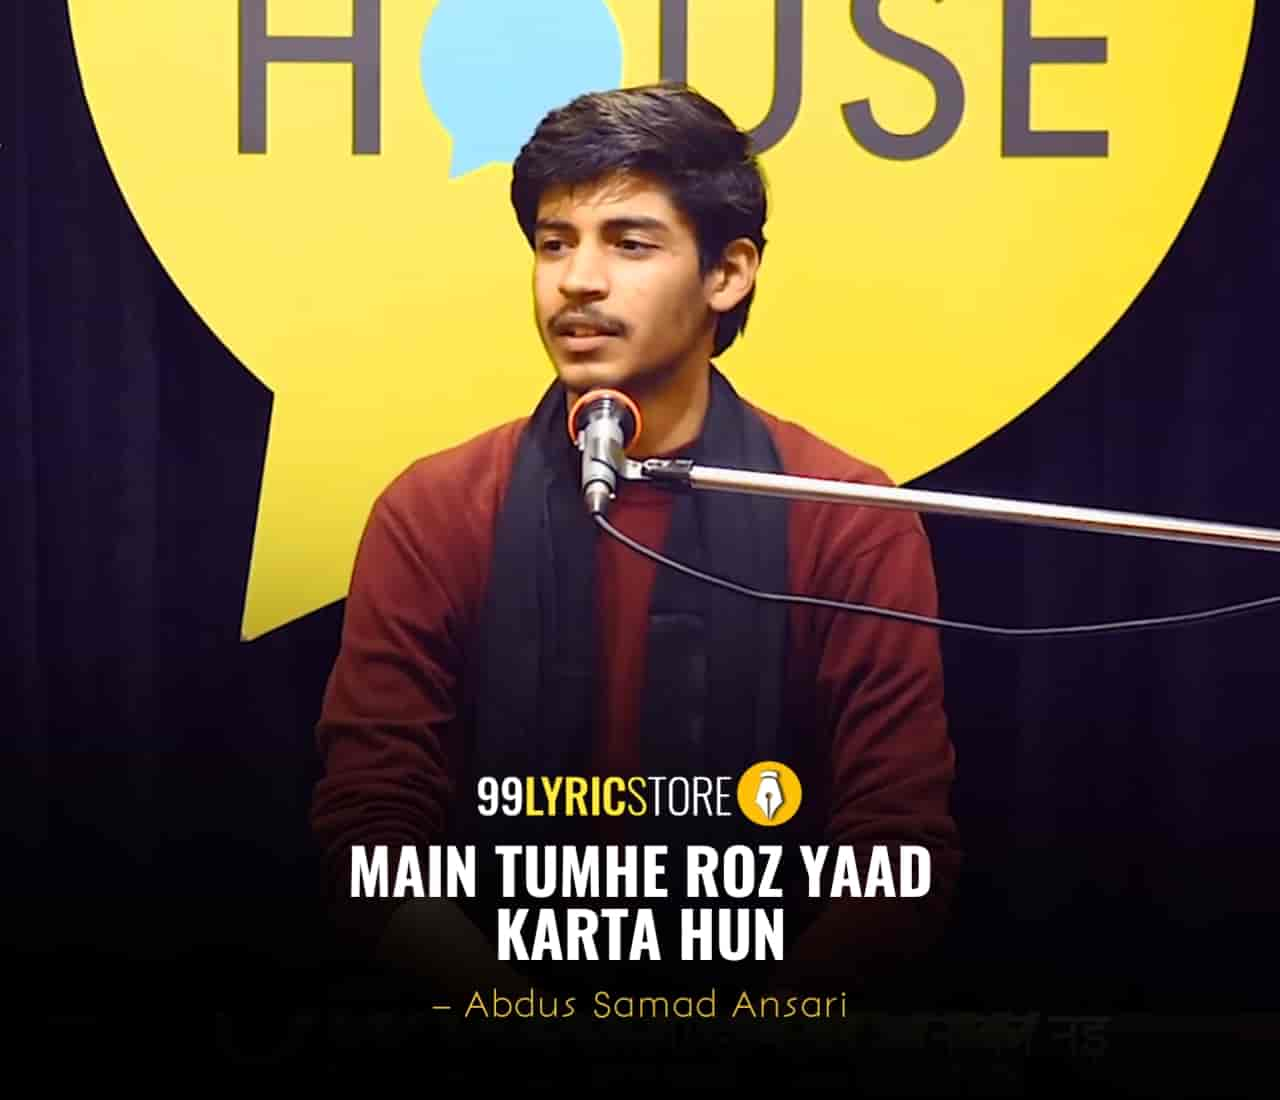 About This Poetry :- The beautiful Ghazal  'Main Tumhe Roz Yaad Karta Hun' for The Social House is presented by Abdus Samad Ansari and also written by him which is very beautiful and delightful.